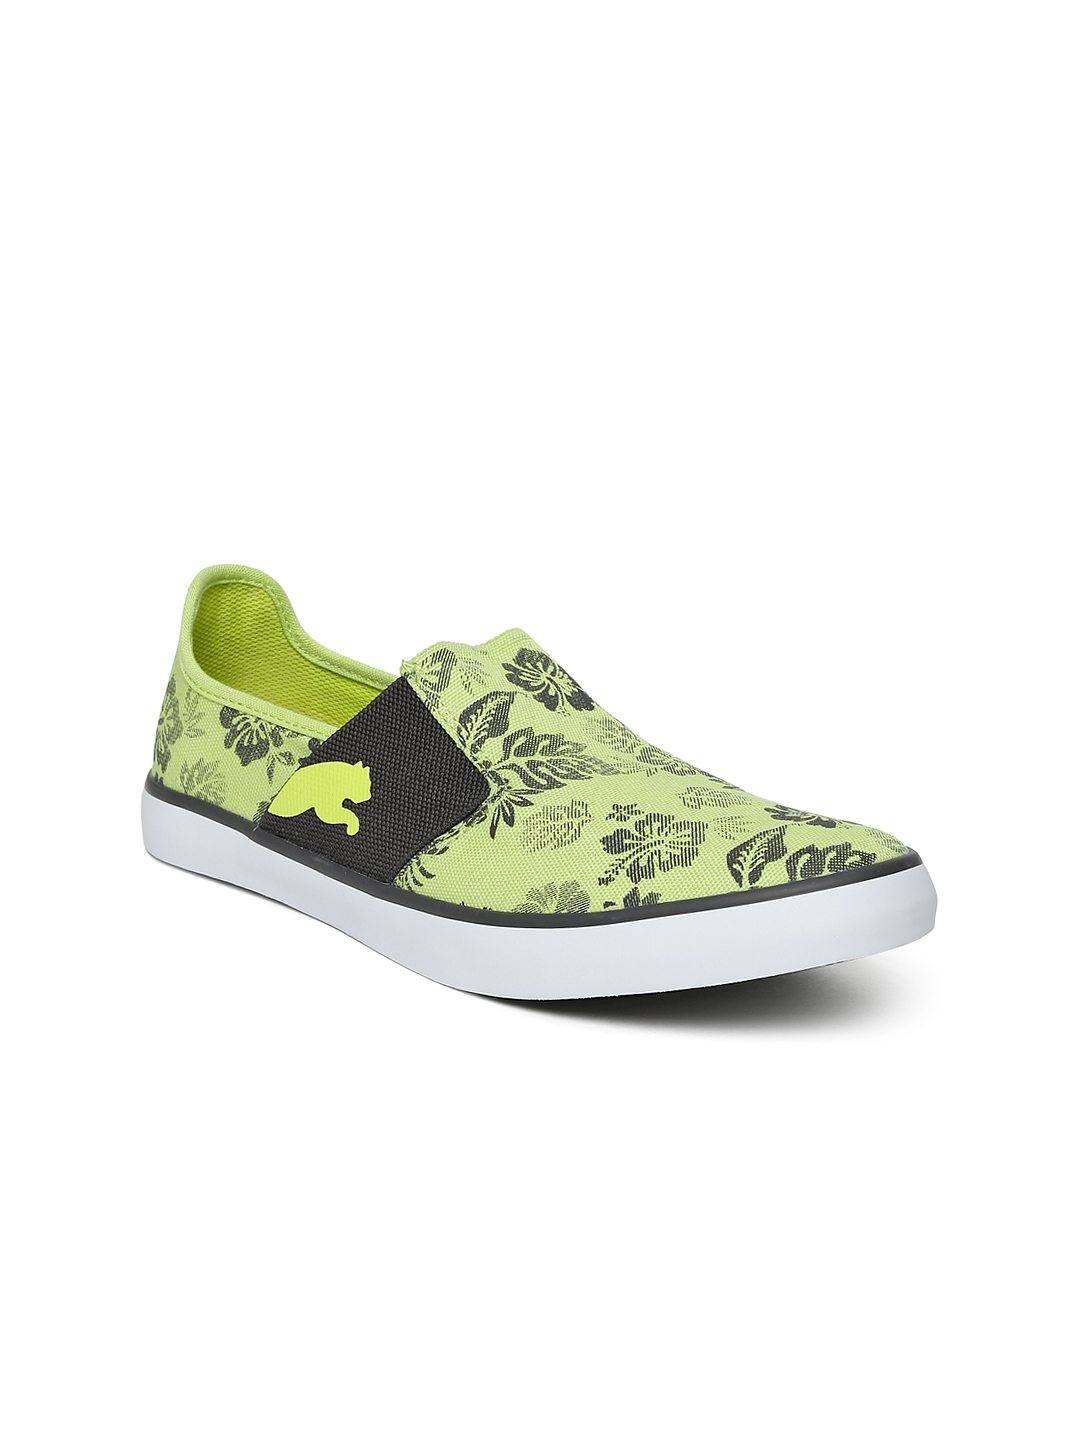 PUMA Women Lime Green NU Ballet DP Printed Casual Shoes